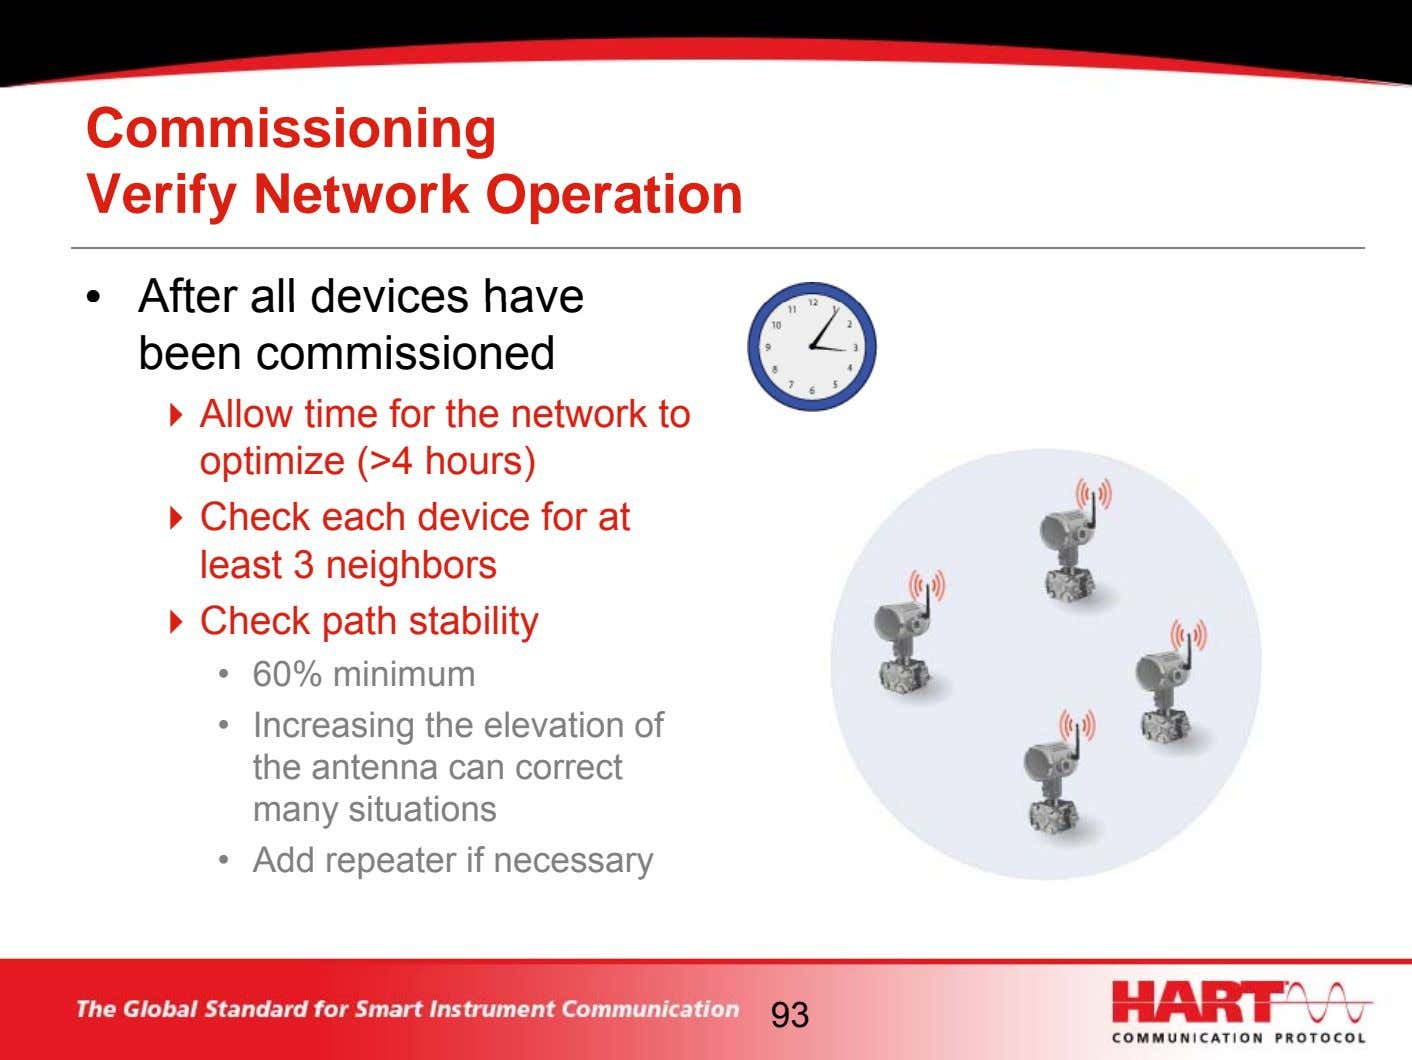 Commissioning Verify Network Operation • After all devices have been commissioned Allow time for the